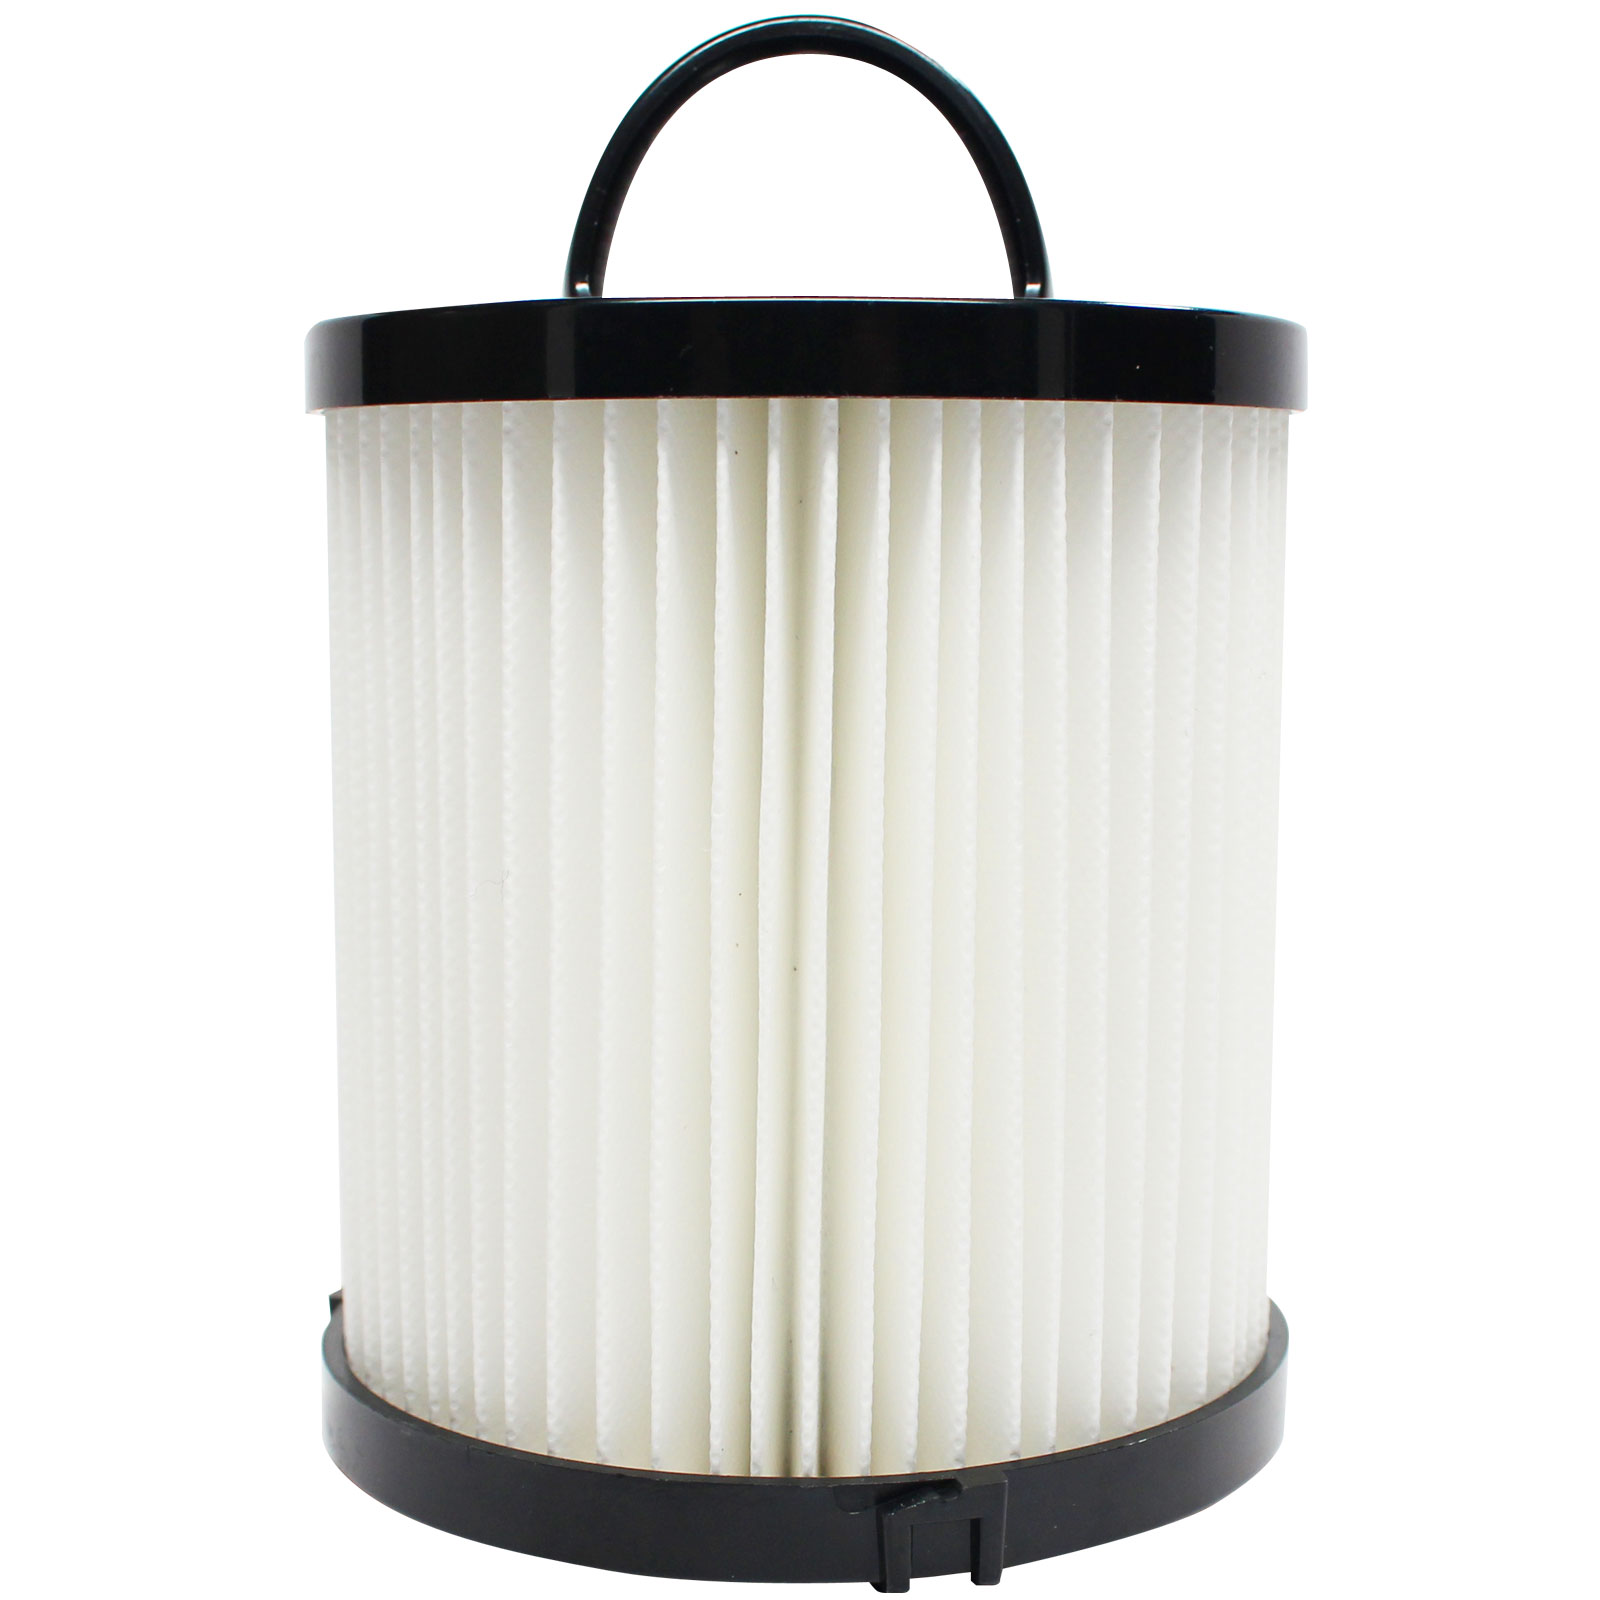 Replacement Eureka EF91 Vacuum Dust Cup Filter - Compatible Eureka DCF-21 Filter - image 2 of 4